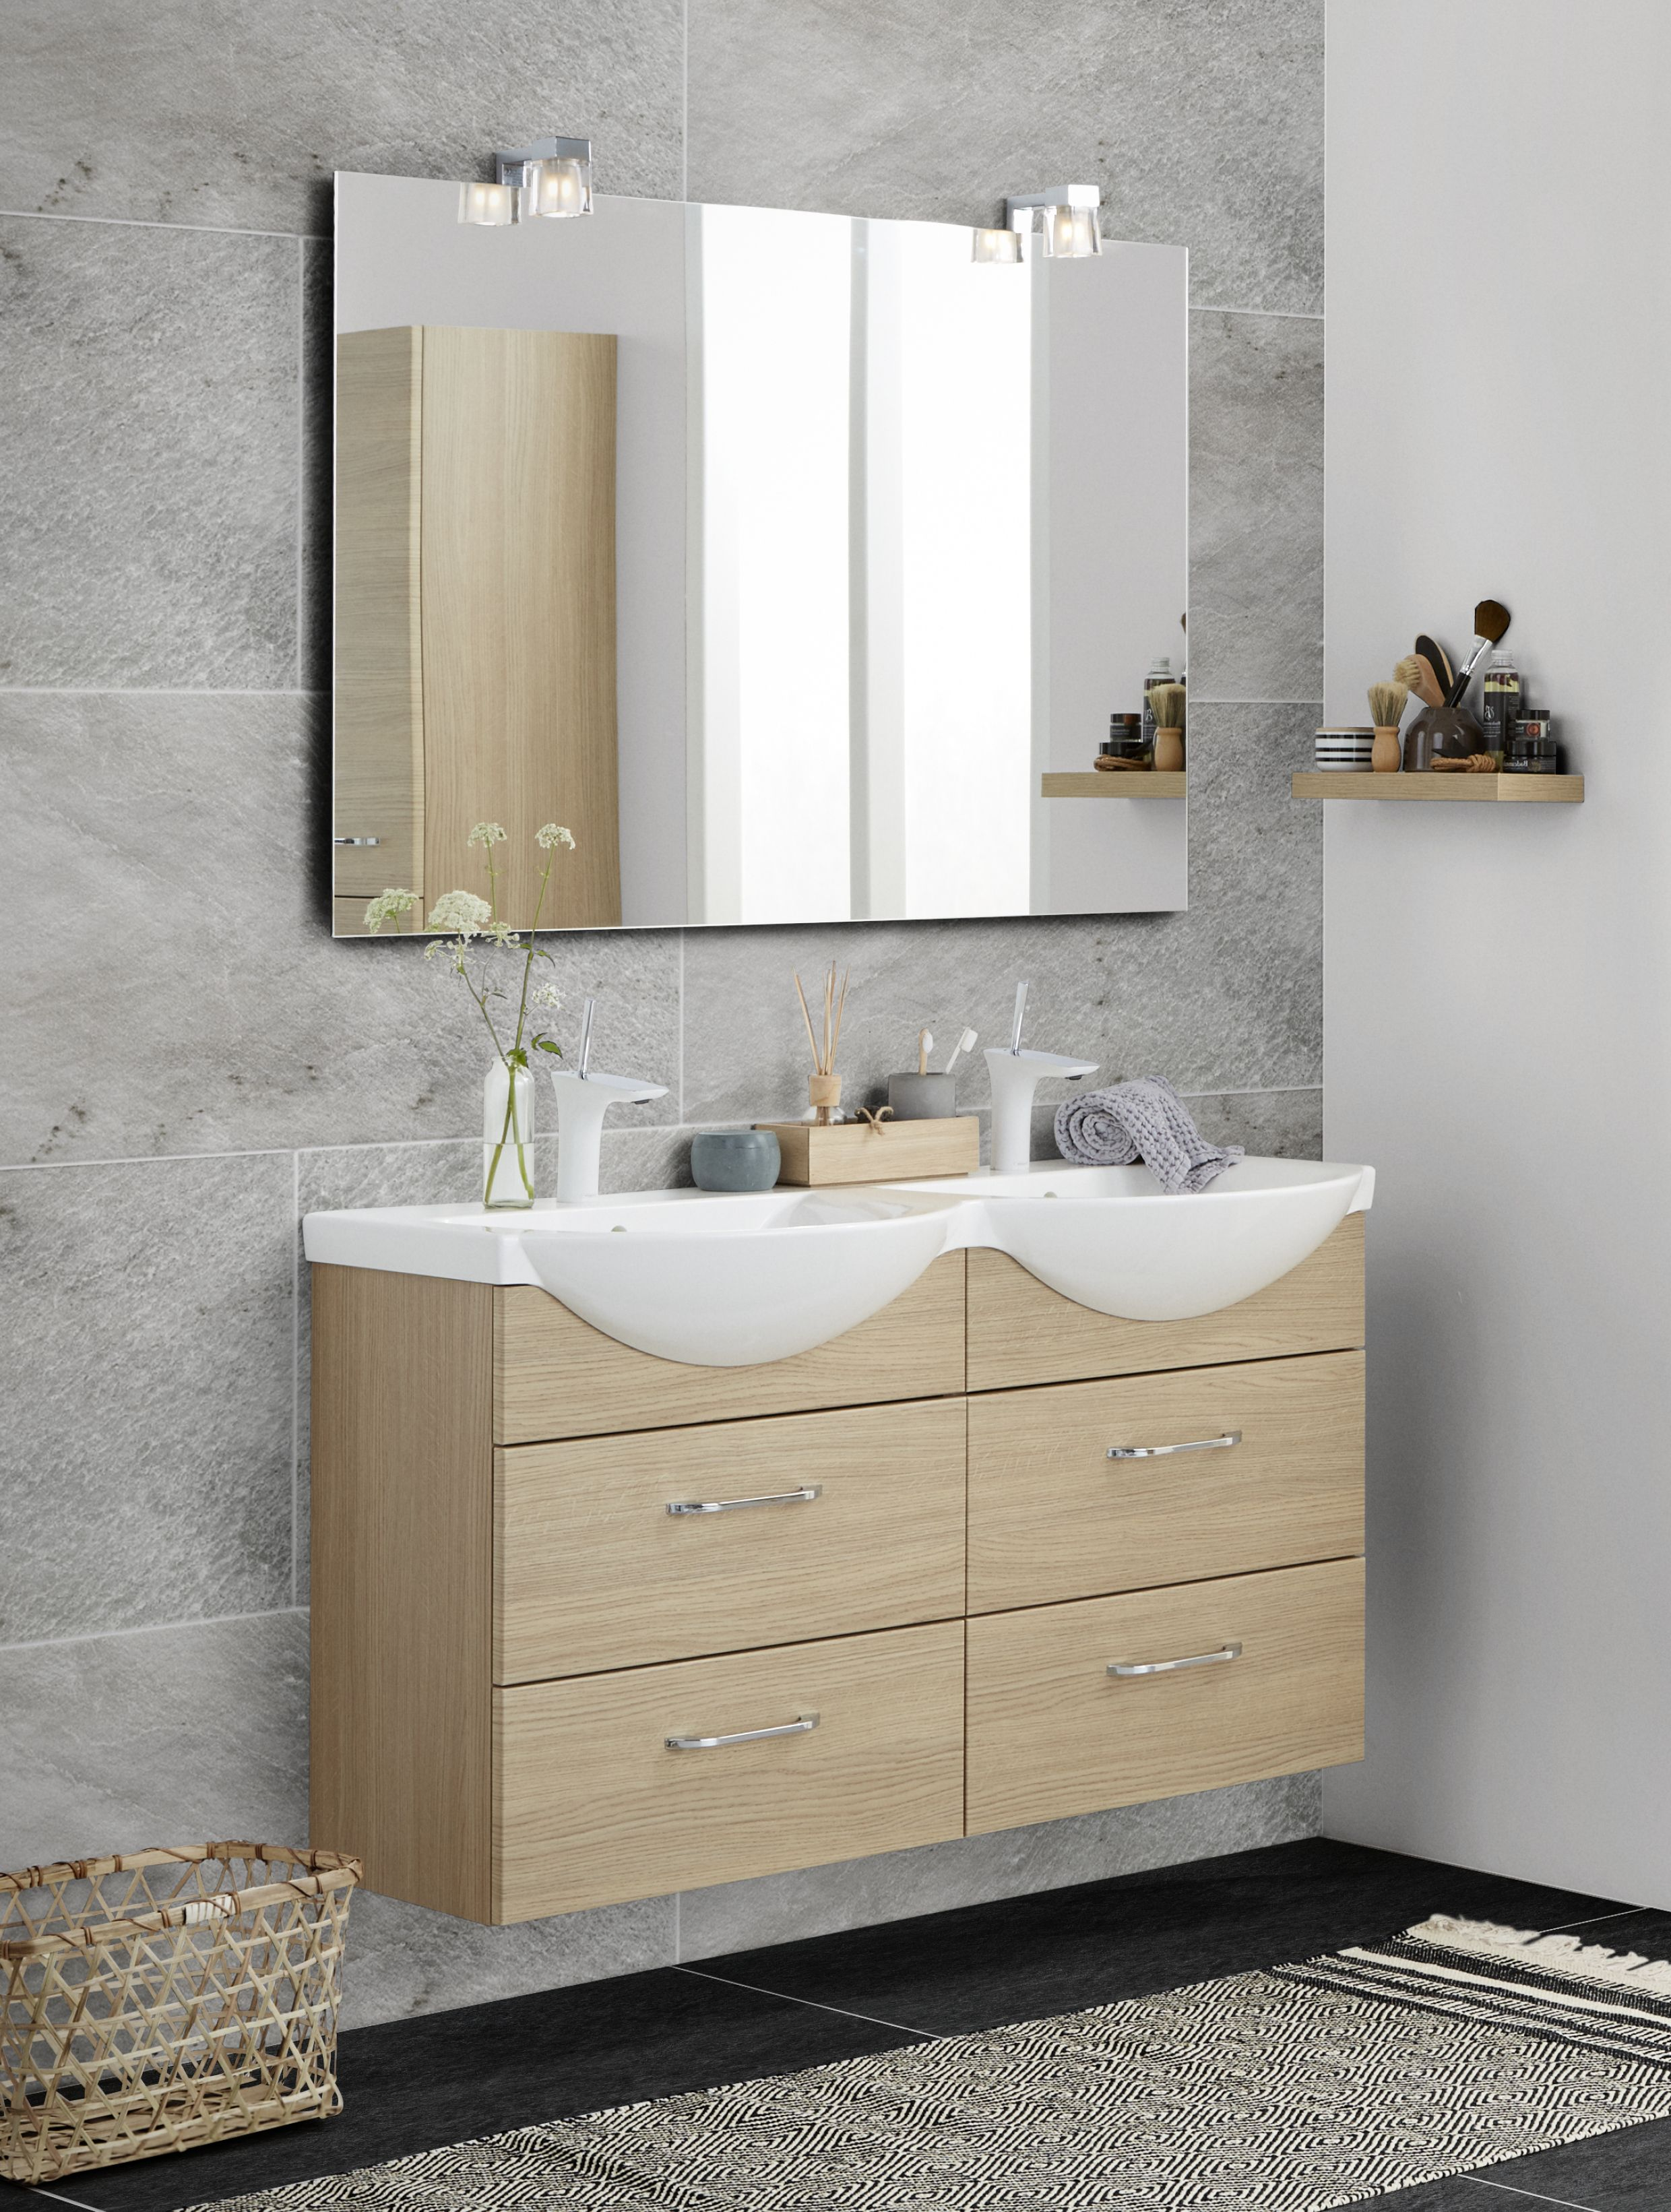 Twin basin Vivo in the small bathroom. Large mirror with Kubus ...